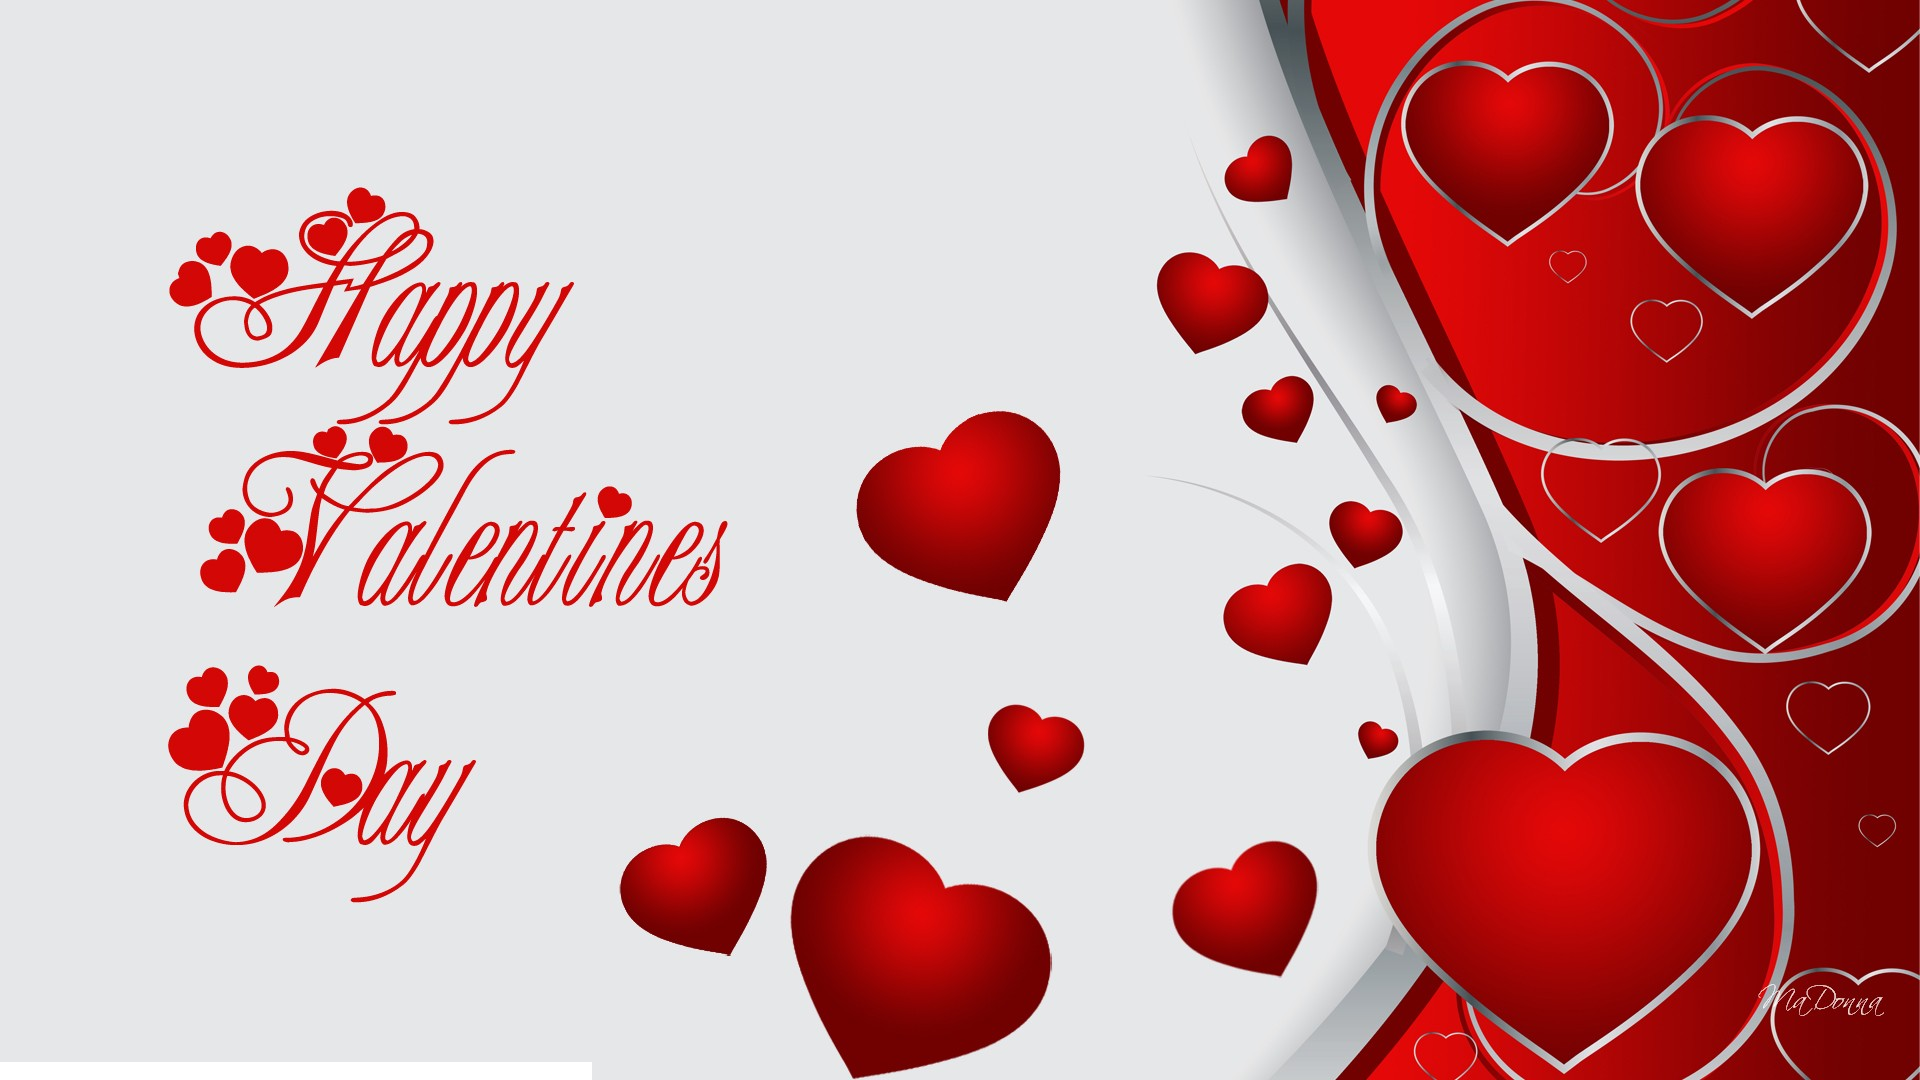 [10 Best] Valentine's Day PC Wallpapers to Make the Mood ...